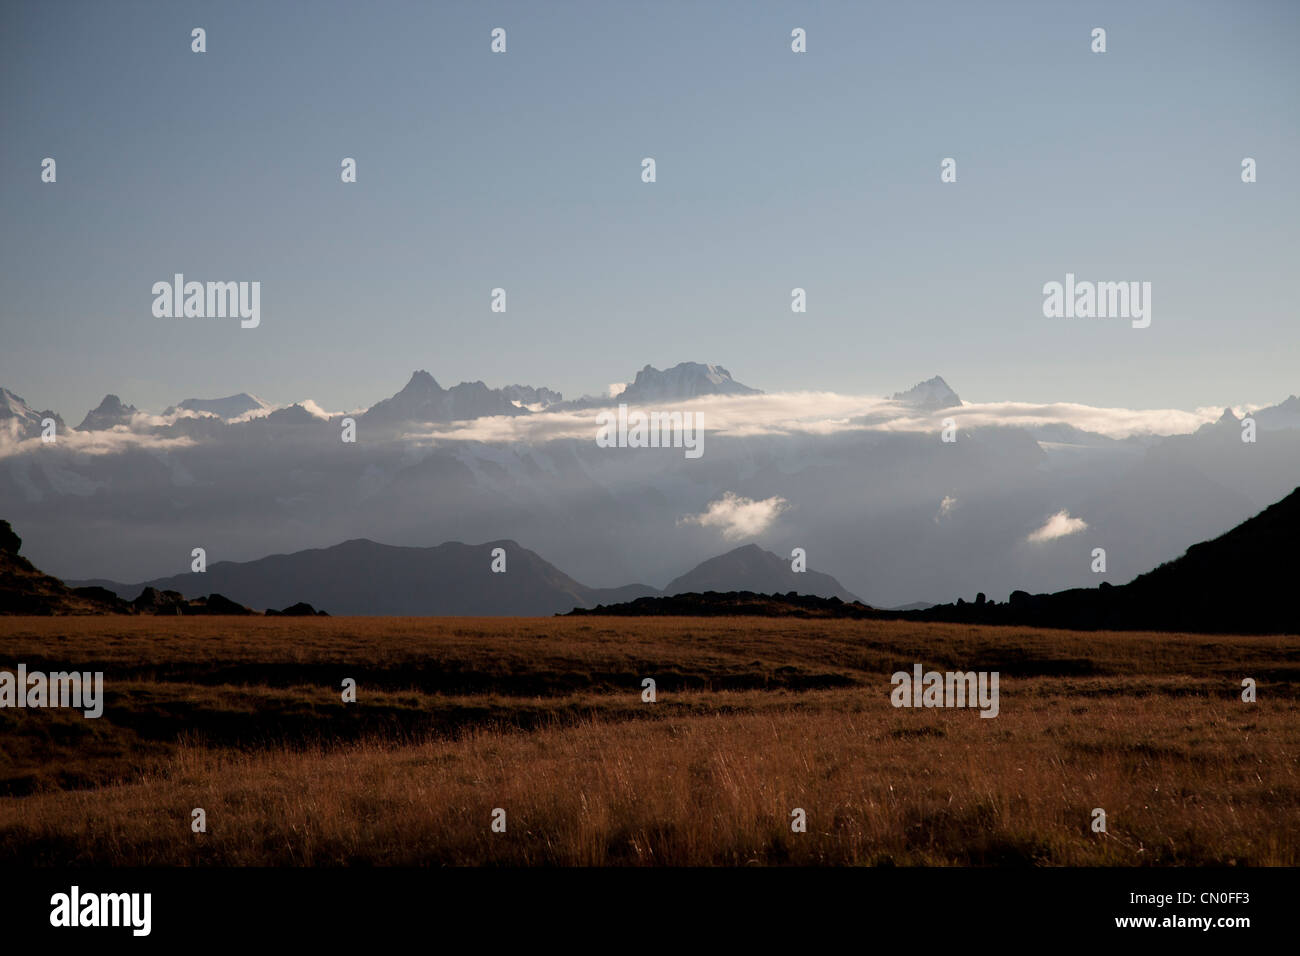 View from Cabane Du Mont Fort, looking towards the' Grand Combin' and the 'Glacier de Corbassiere'. - Stock Image